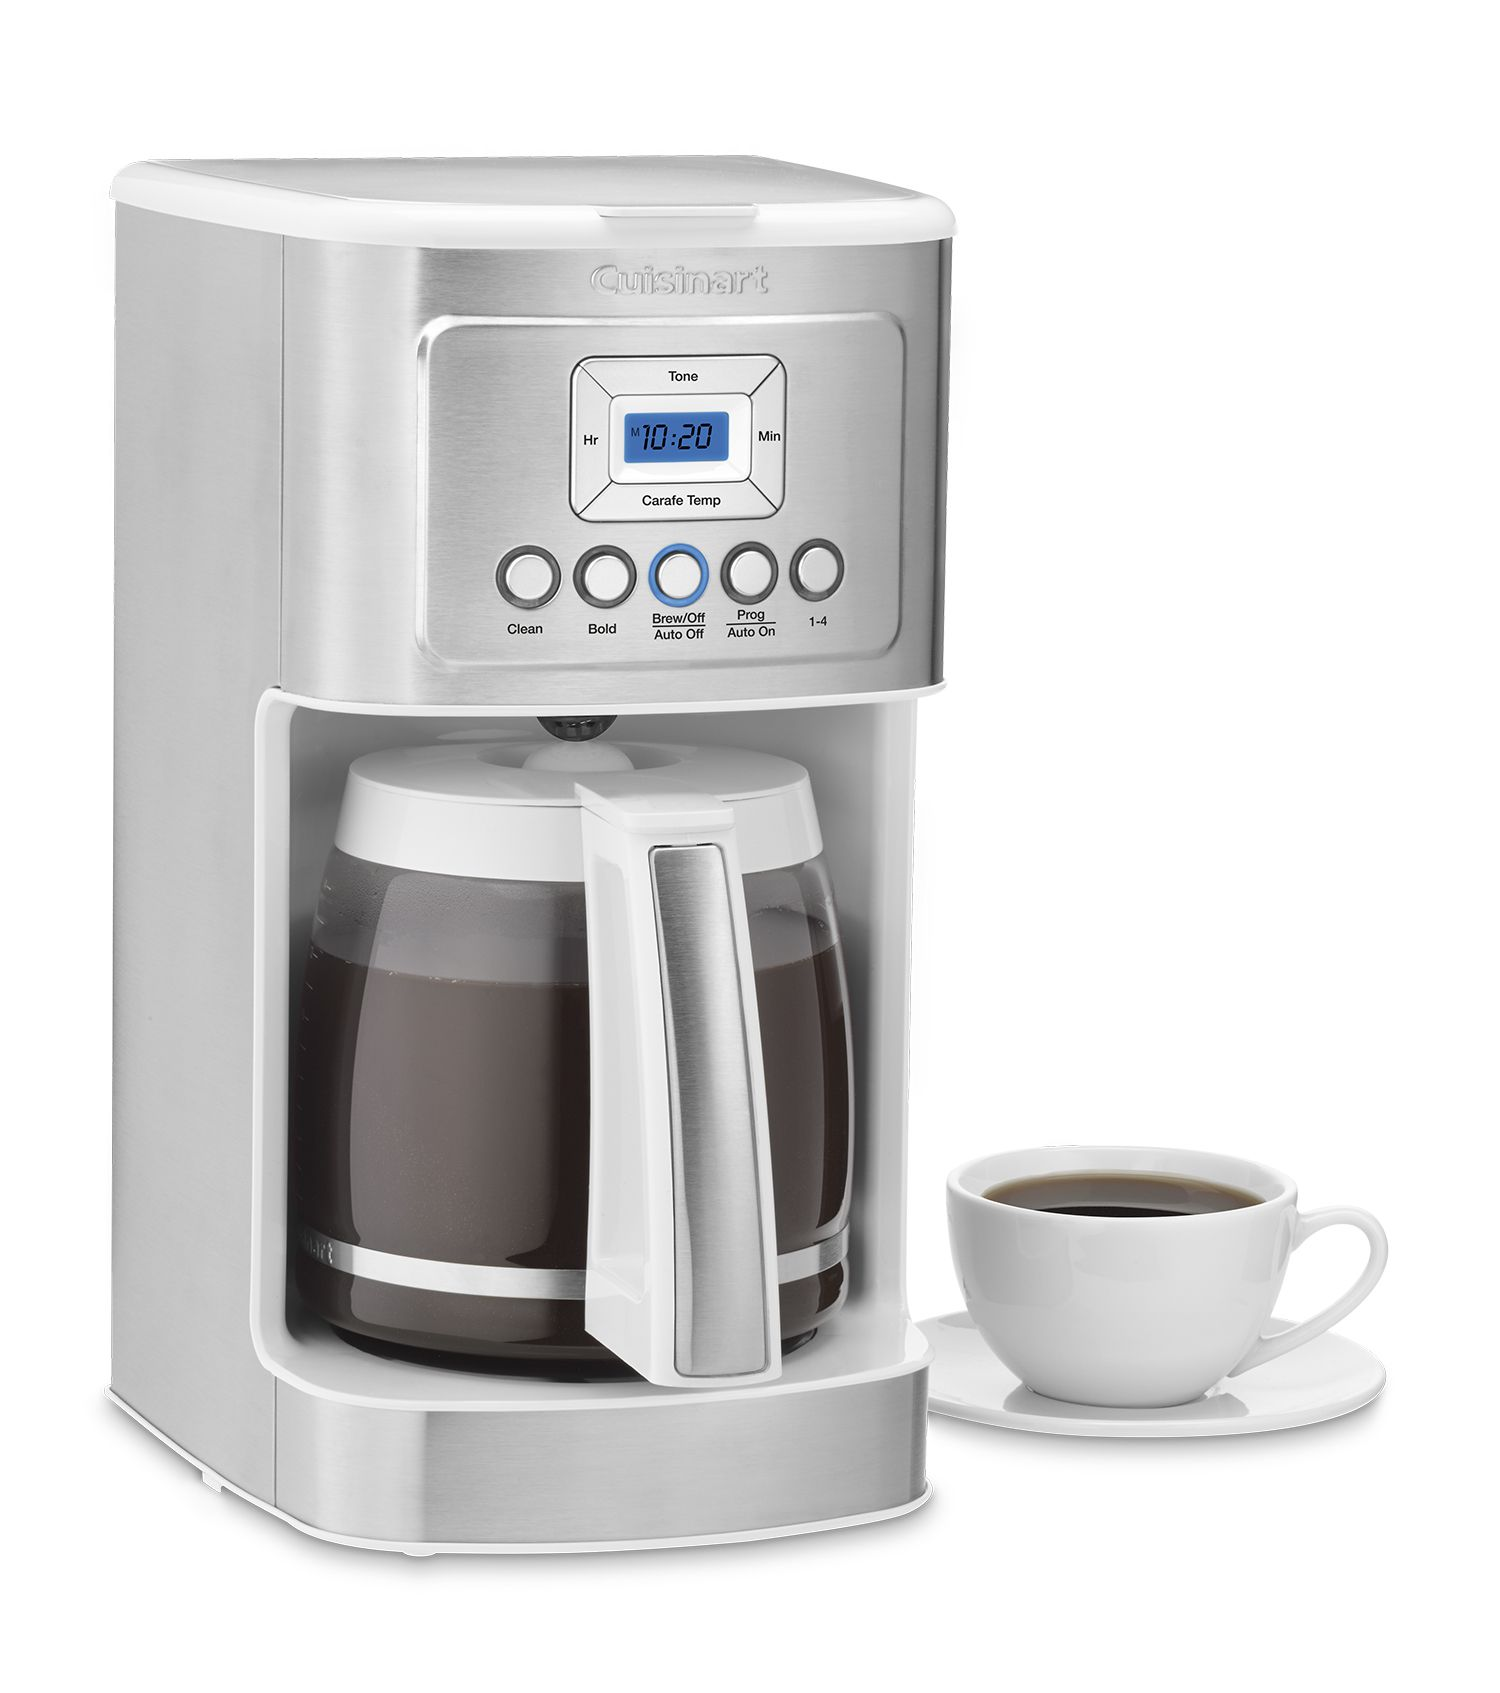 14 Cup Programmable Coffeemaker Best Coffee Maker Coffee Coffee Maker